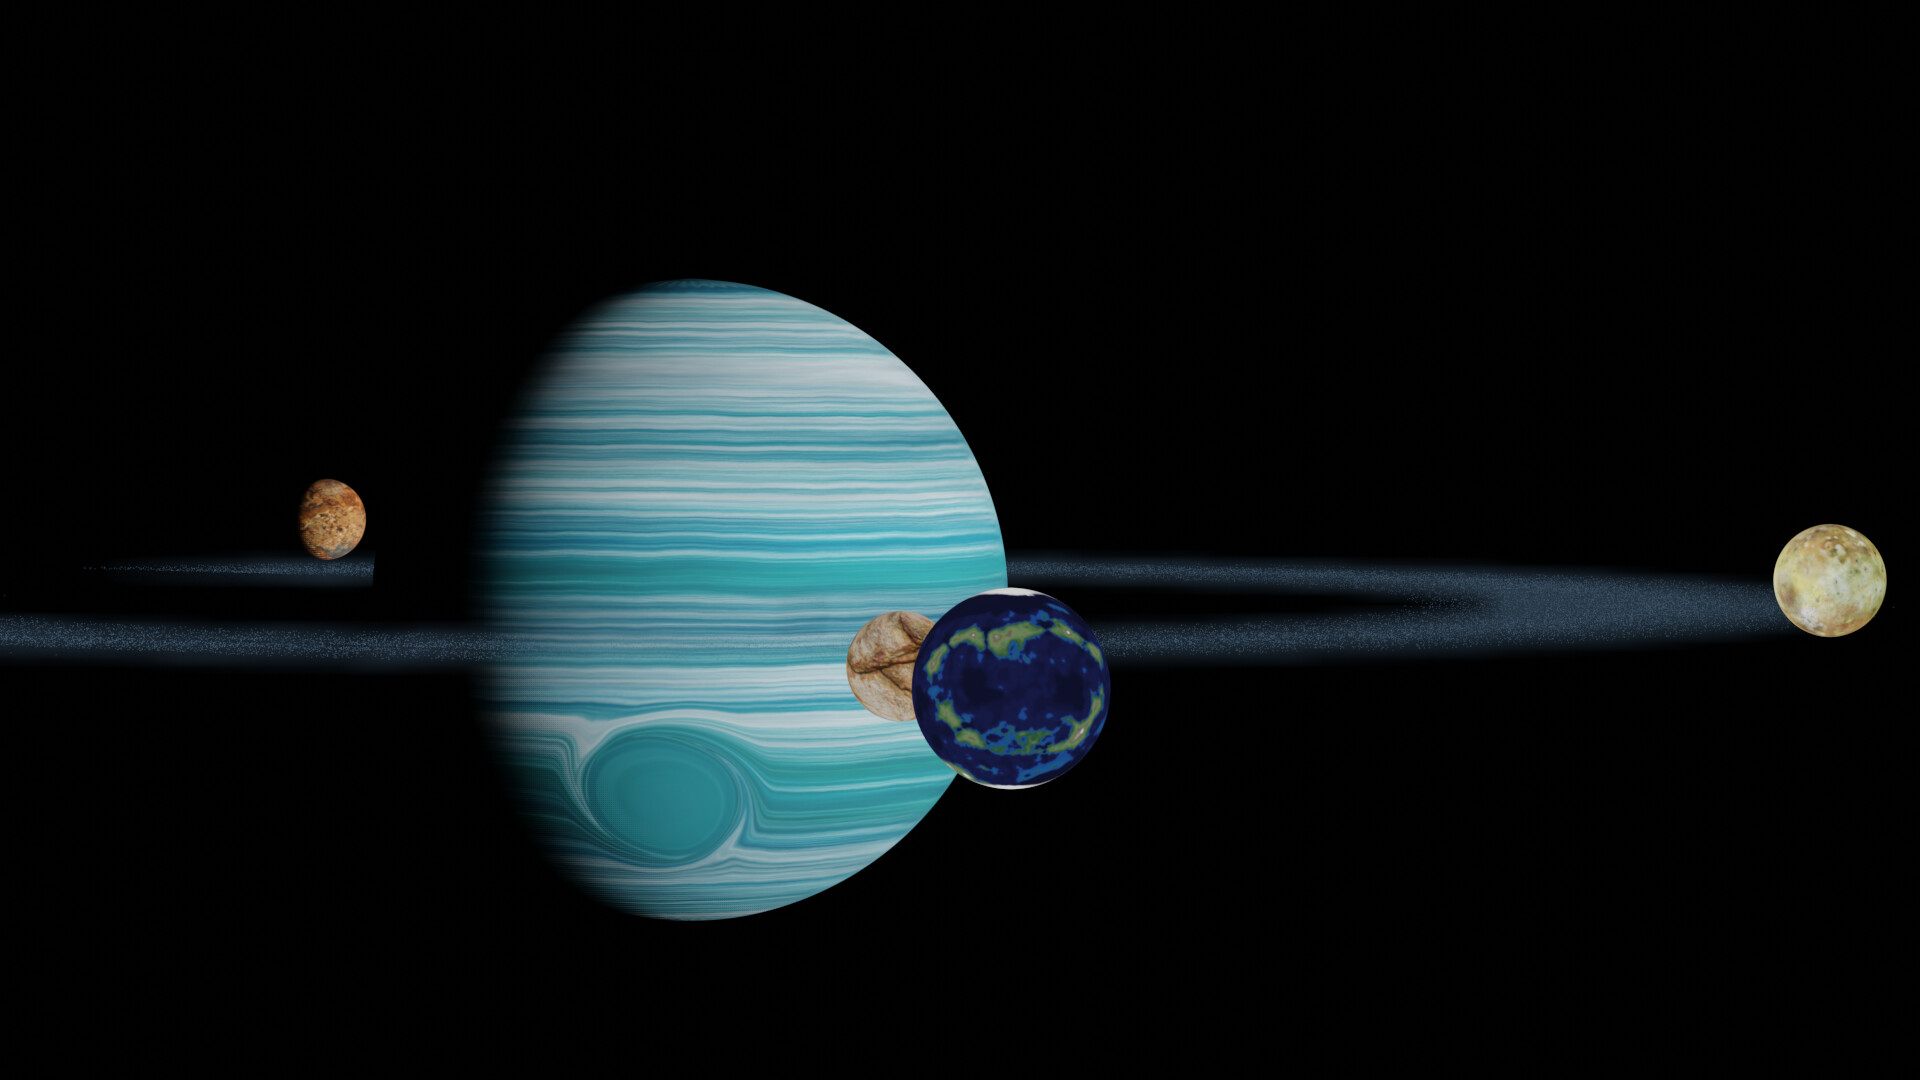 Shinseiko kuromatsu awesome gas giant roid rings 4 with volumetric dust and moons